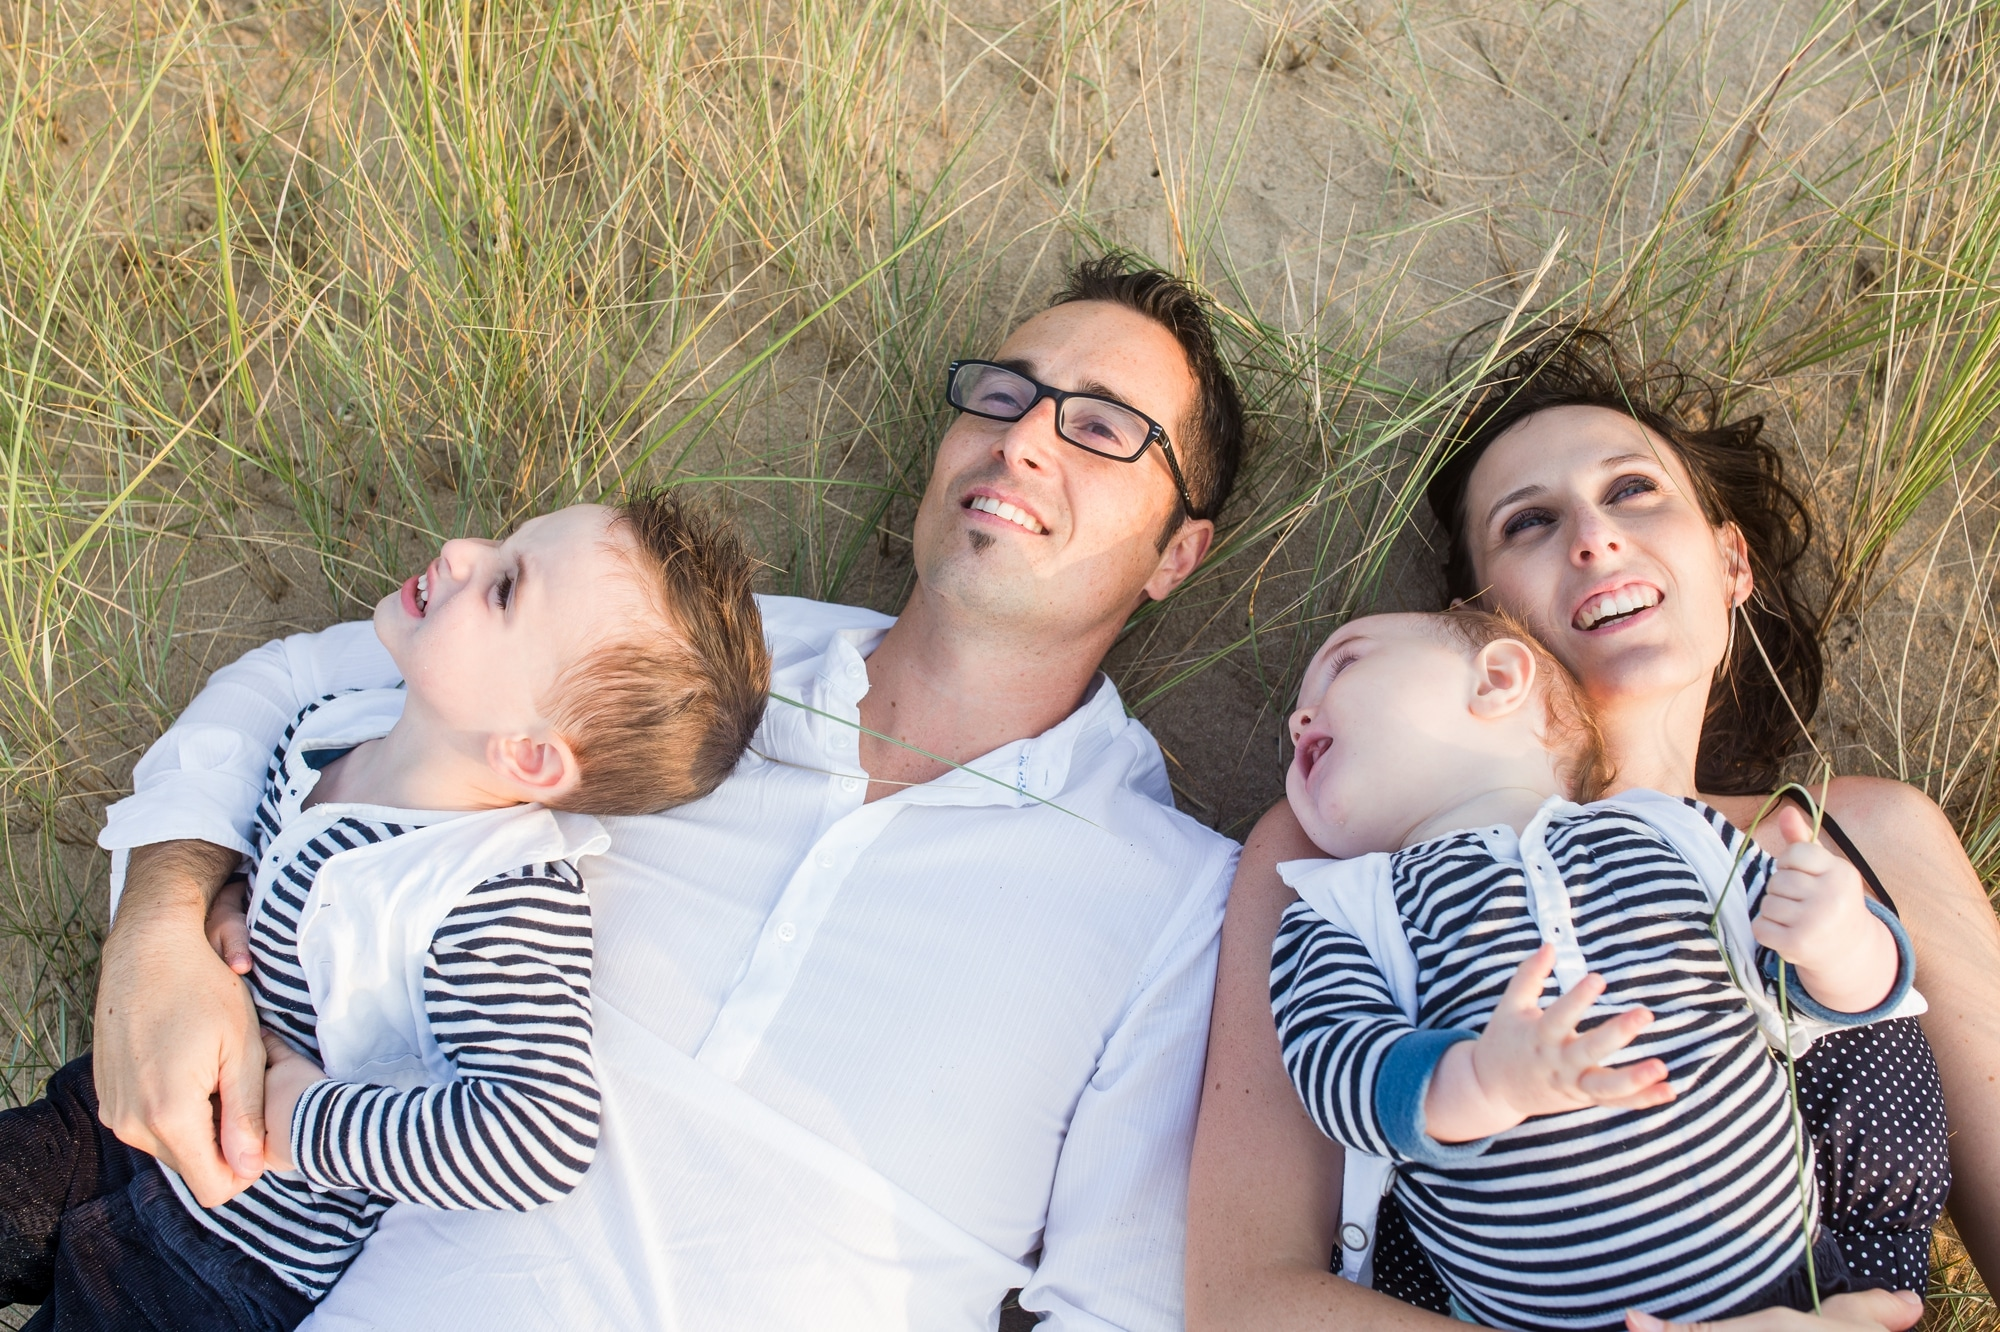 séance famille cabourg basse normandie photographe shooting lifestyle-30